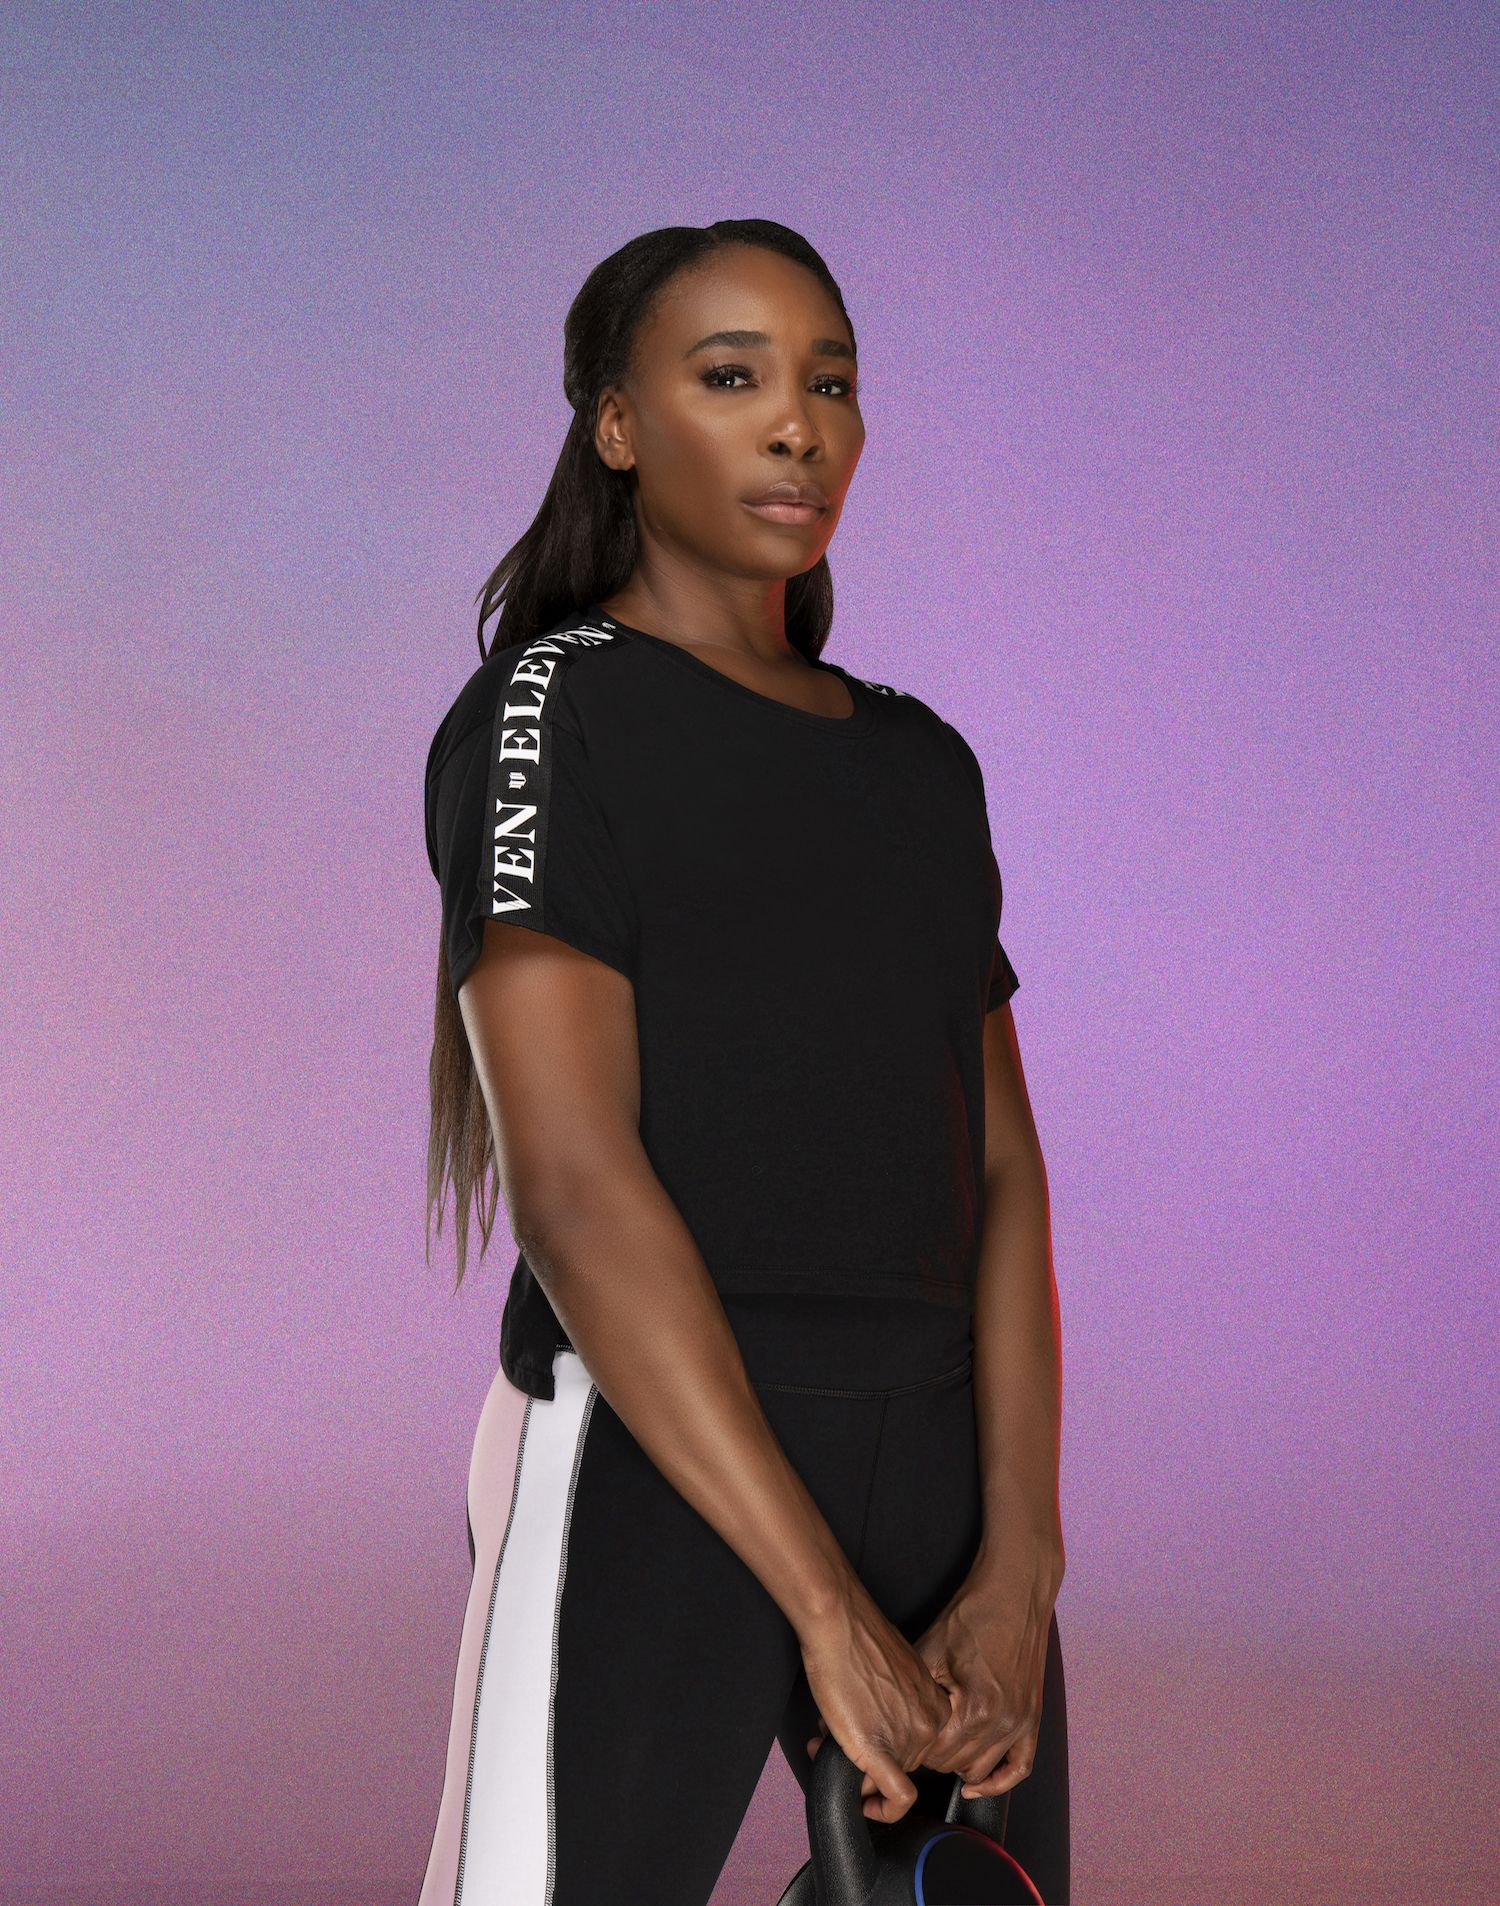 Venus Williams' Diet Is Primarily Raw And Vegan, But She Calls Herself A 'Chegan'